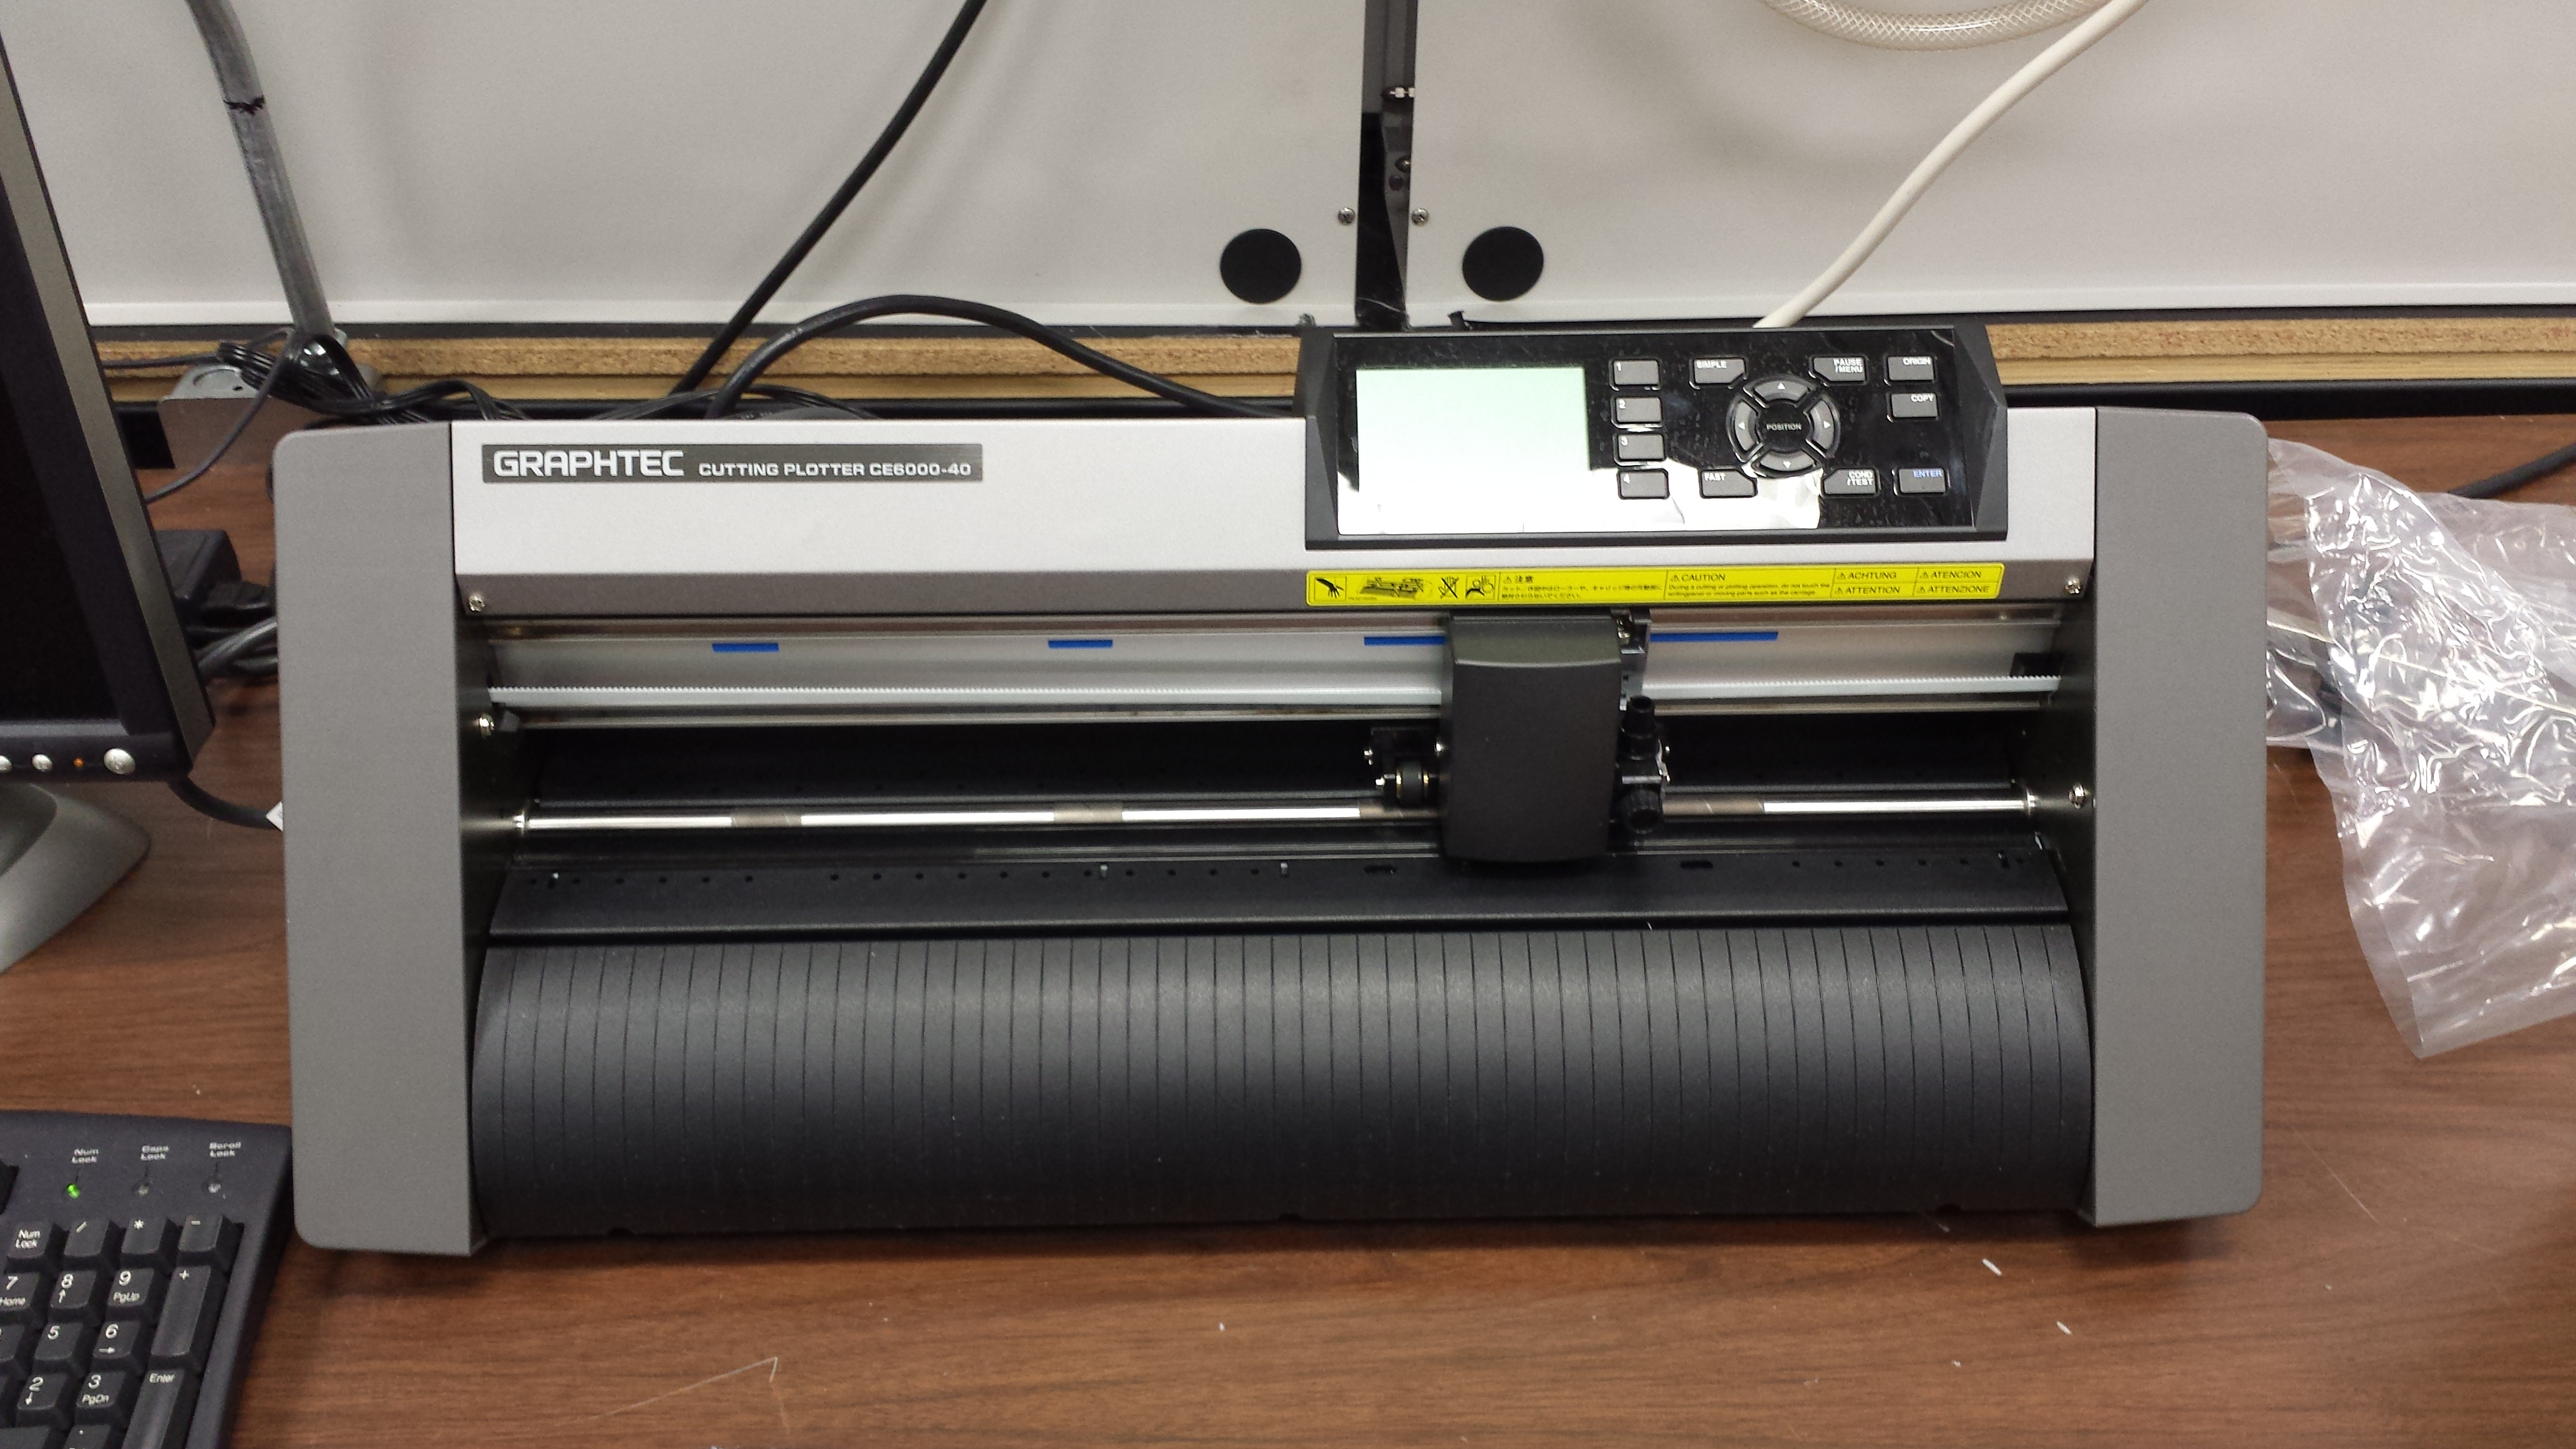 Graphtec Cutter Plotter